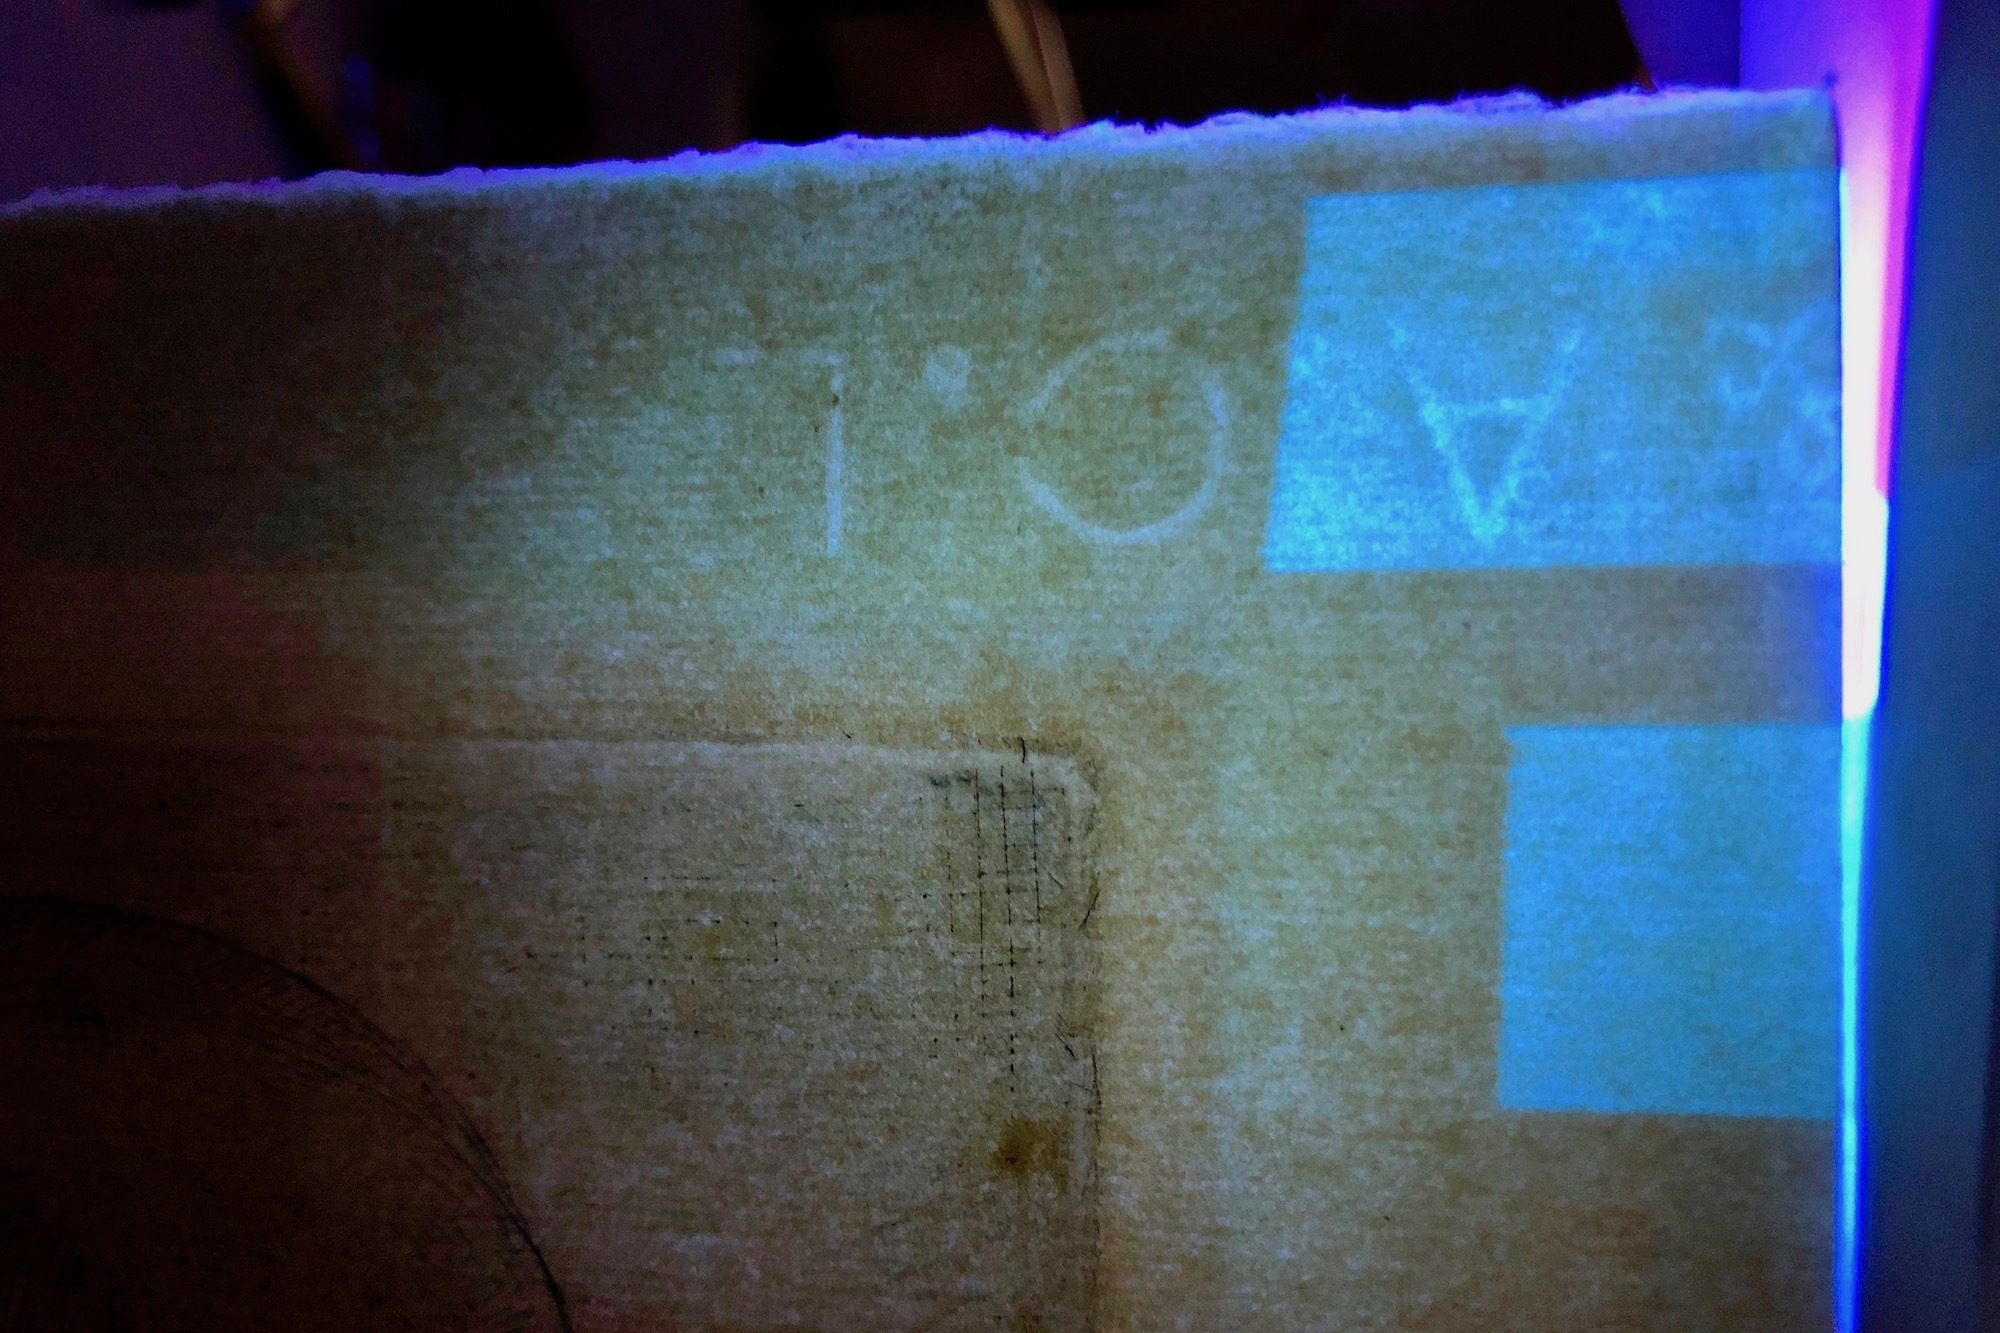 Macon St. Hilaire and Tolleson used ultraviolet light to examine the watermarks of the paper used for the prints.